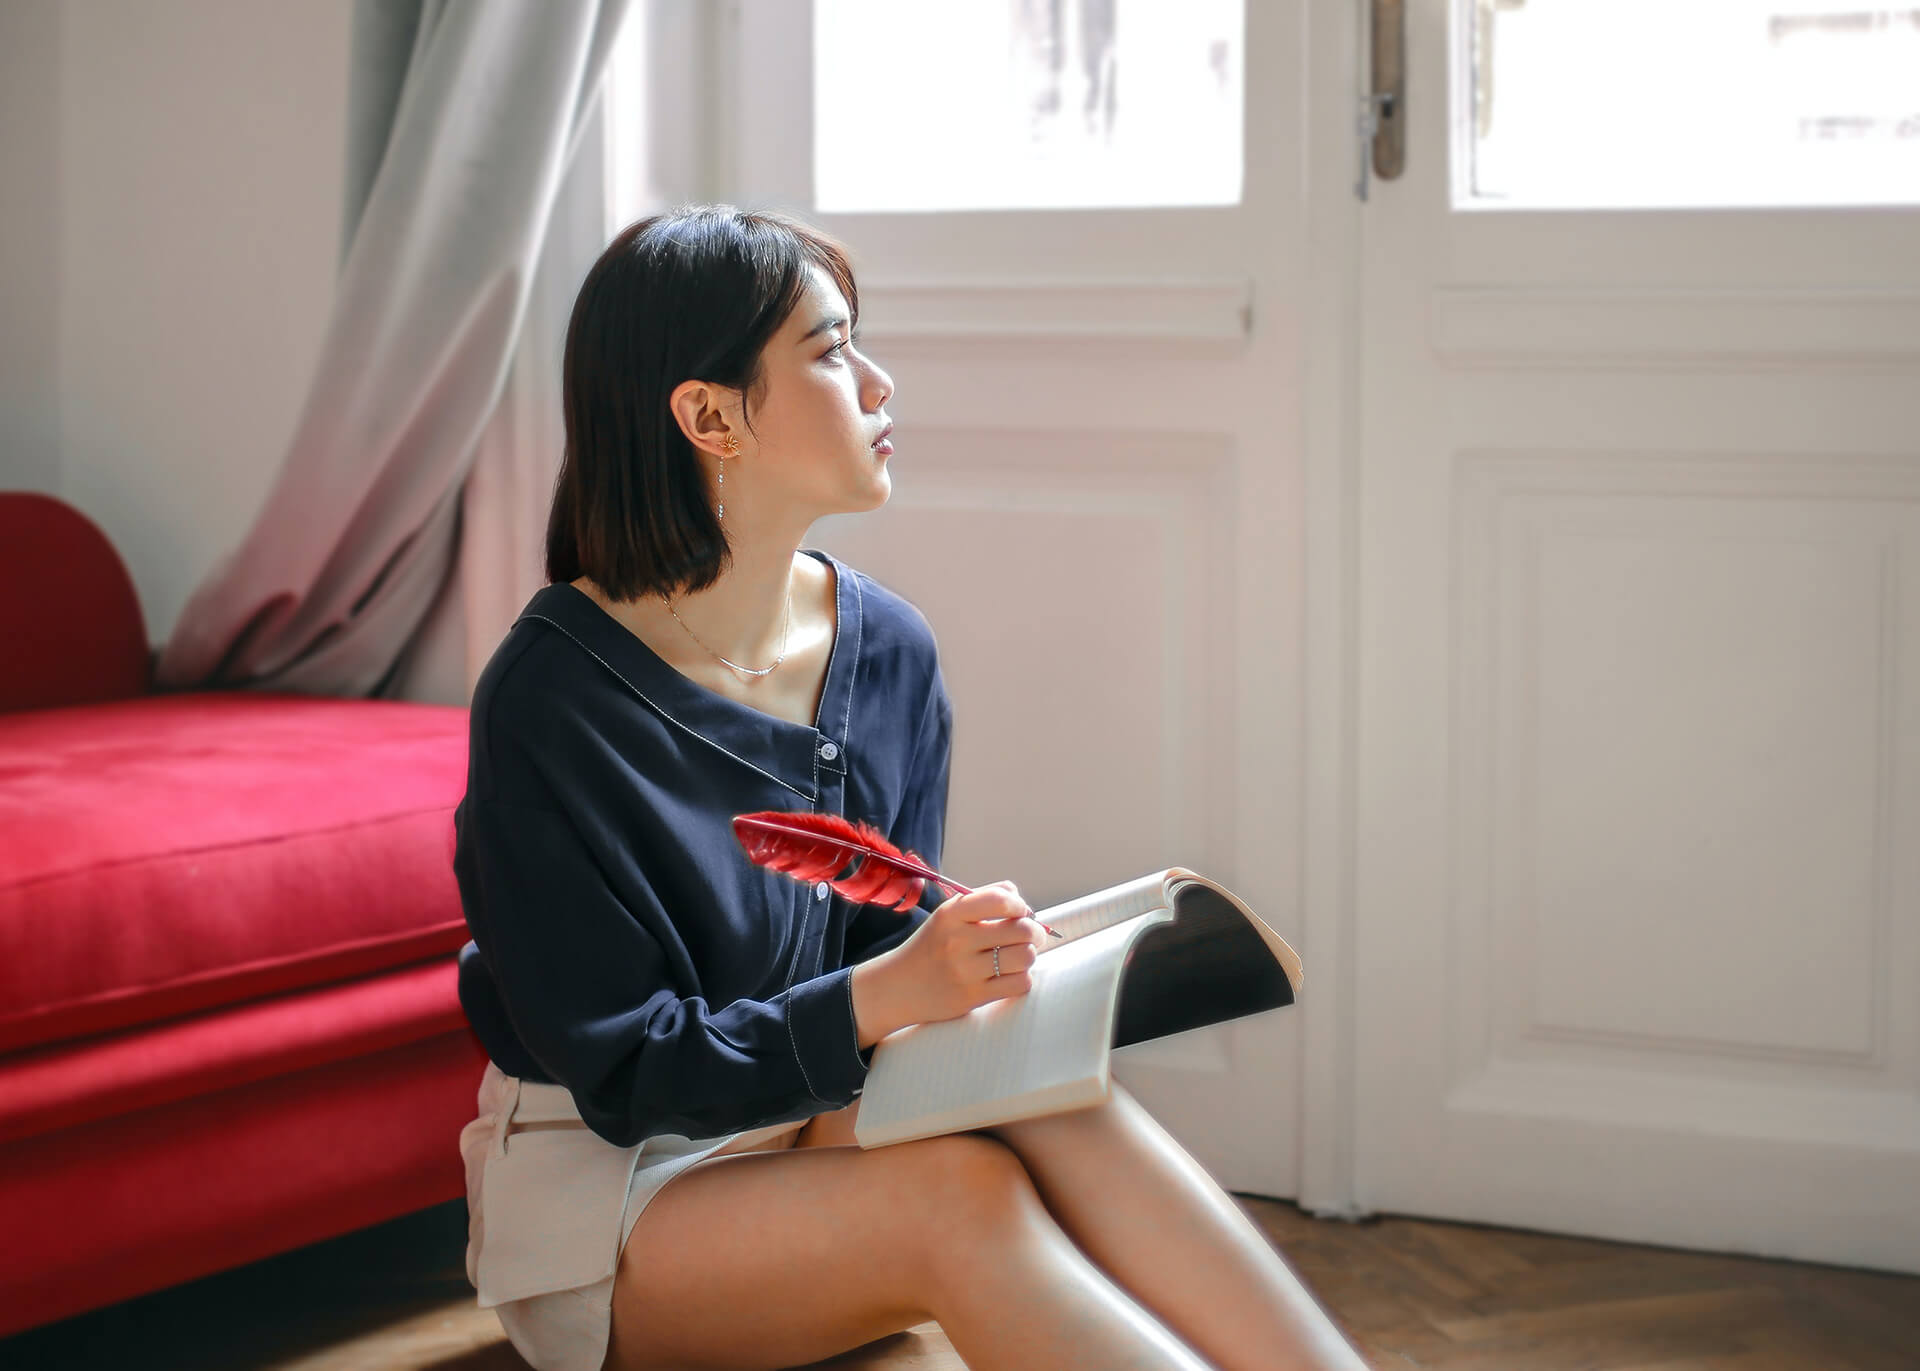 girl writing with feather